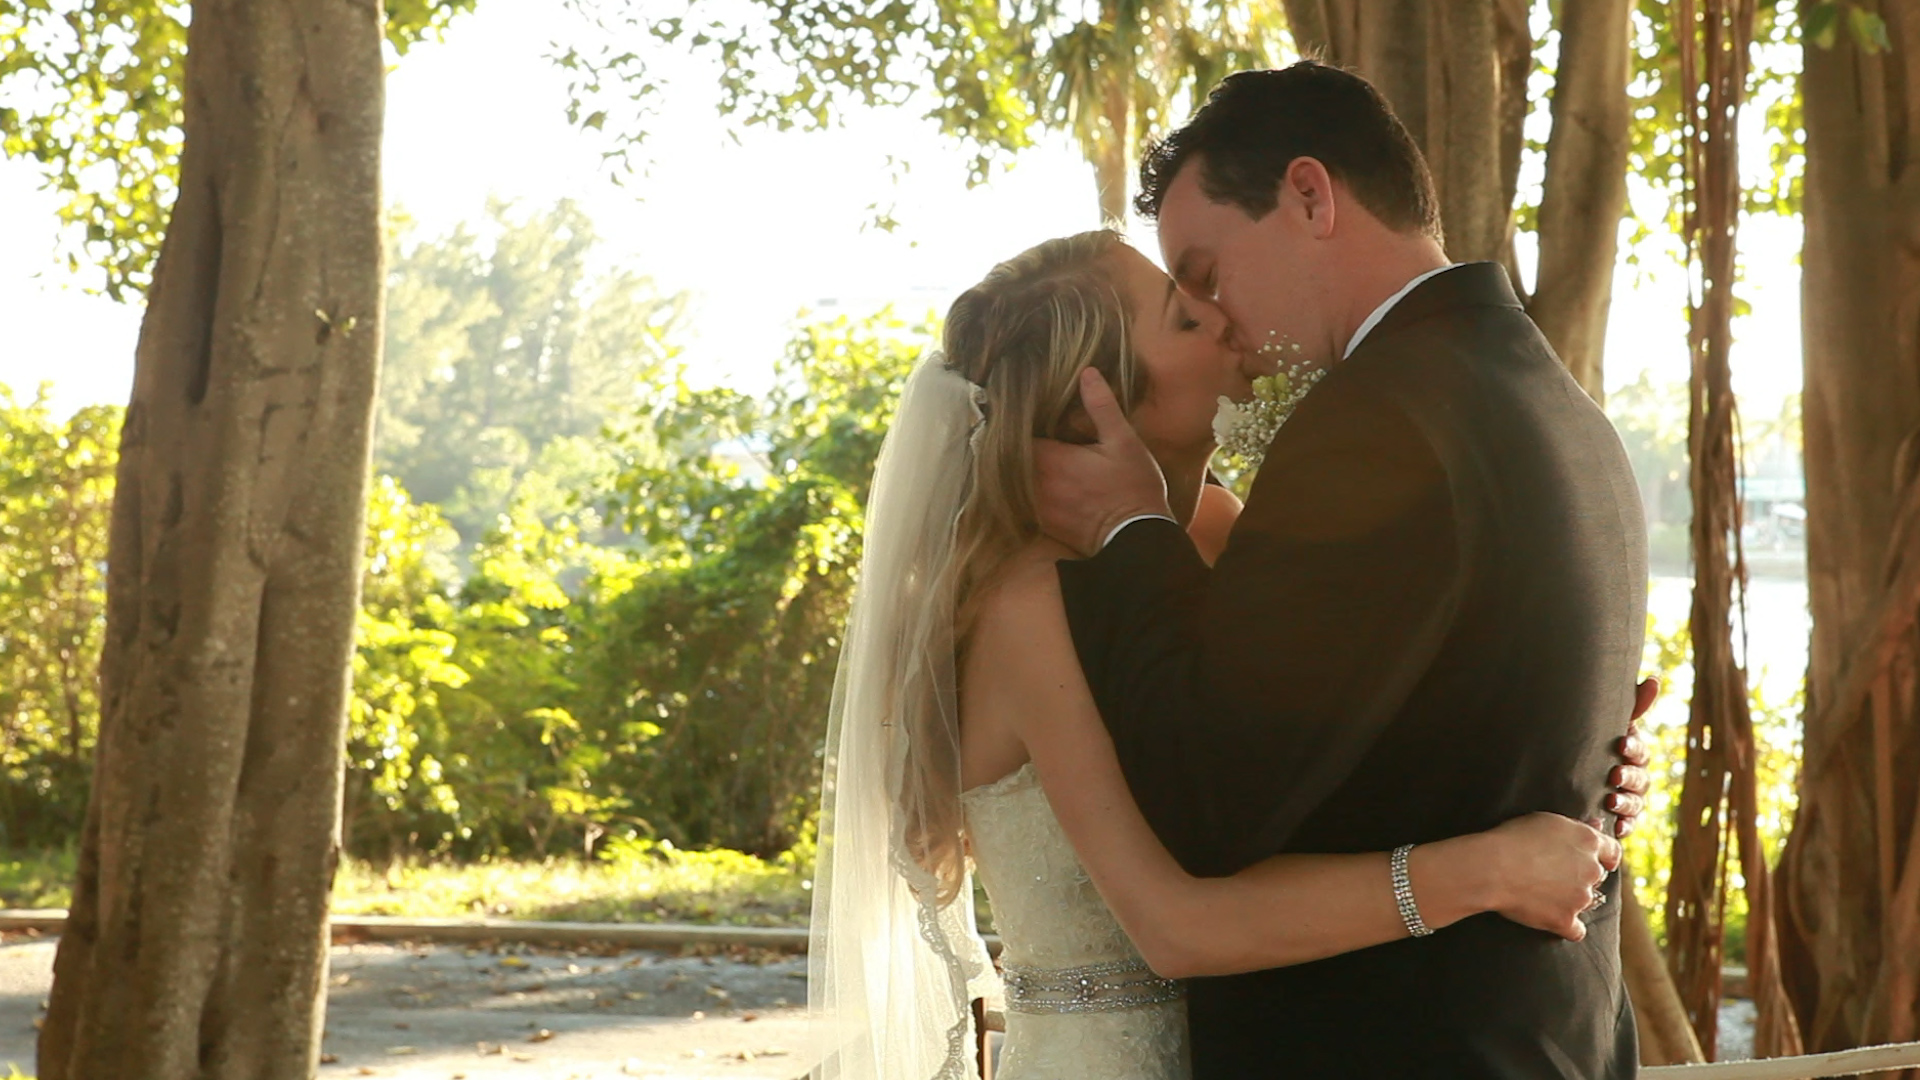 Protected: Mandee & Eric tie the knot!